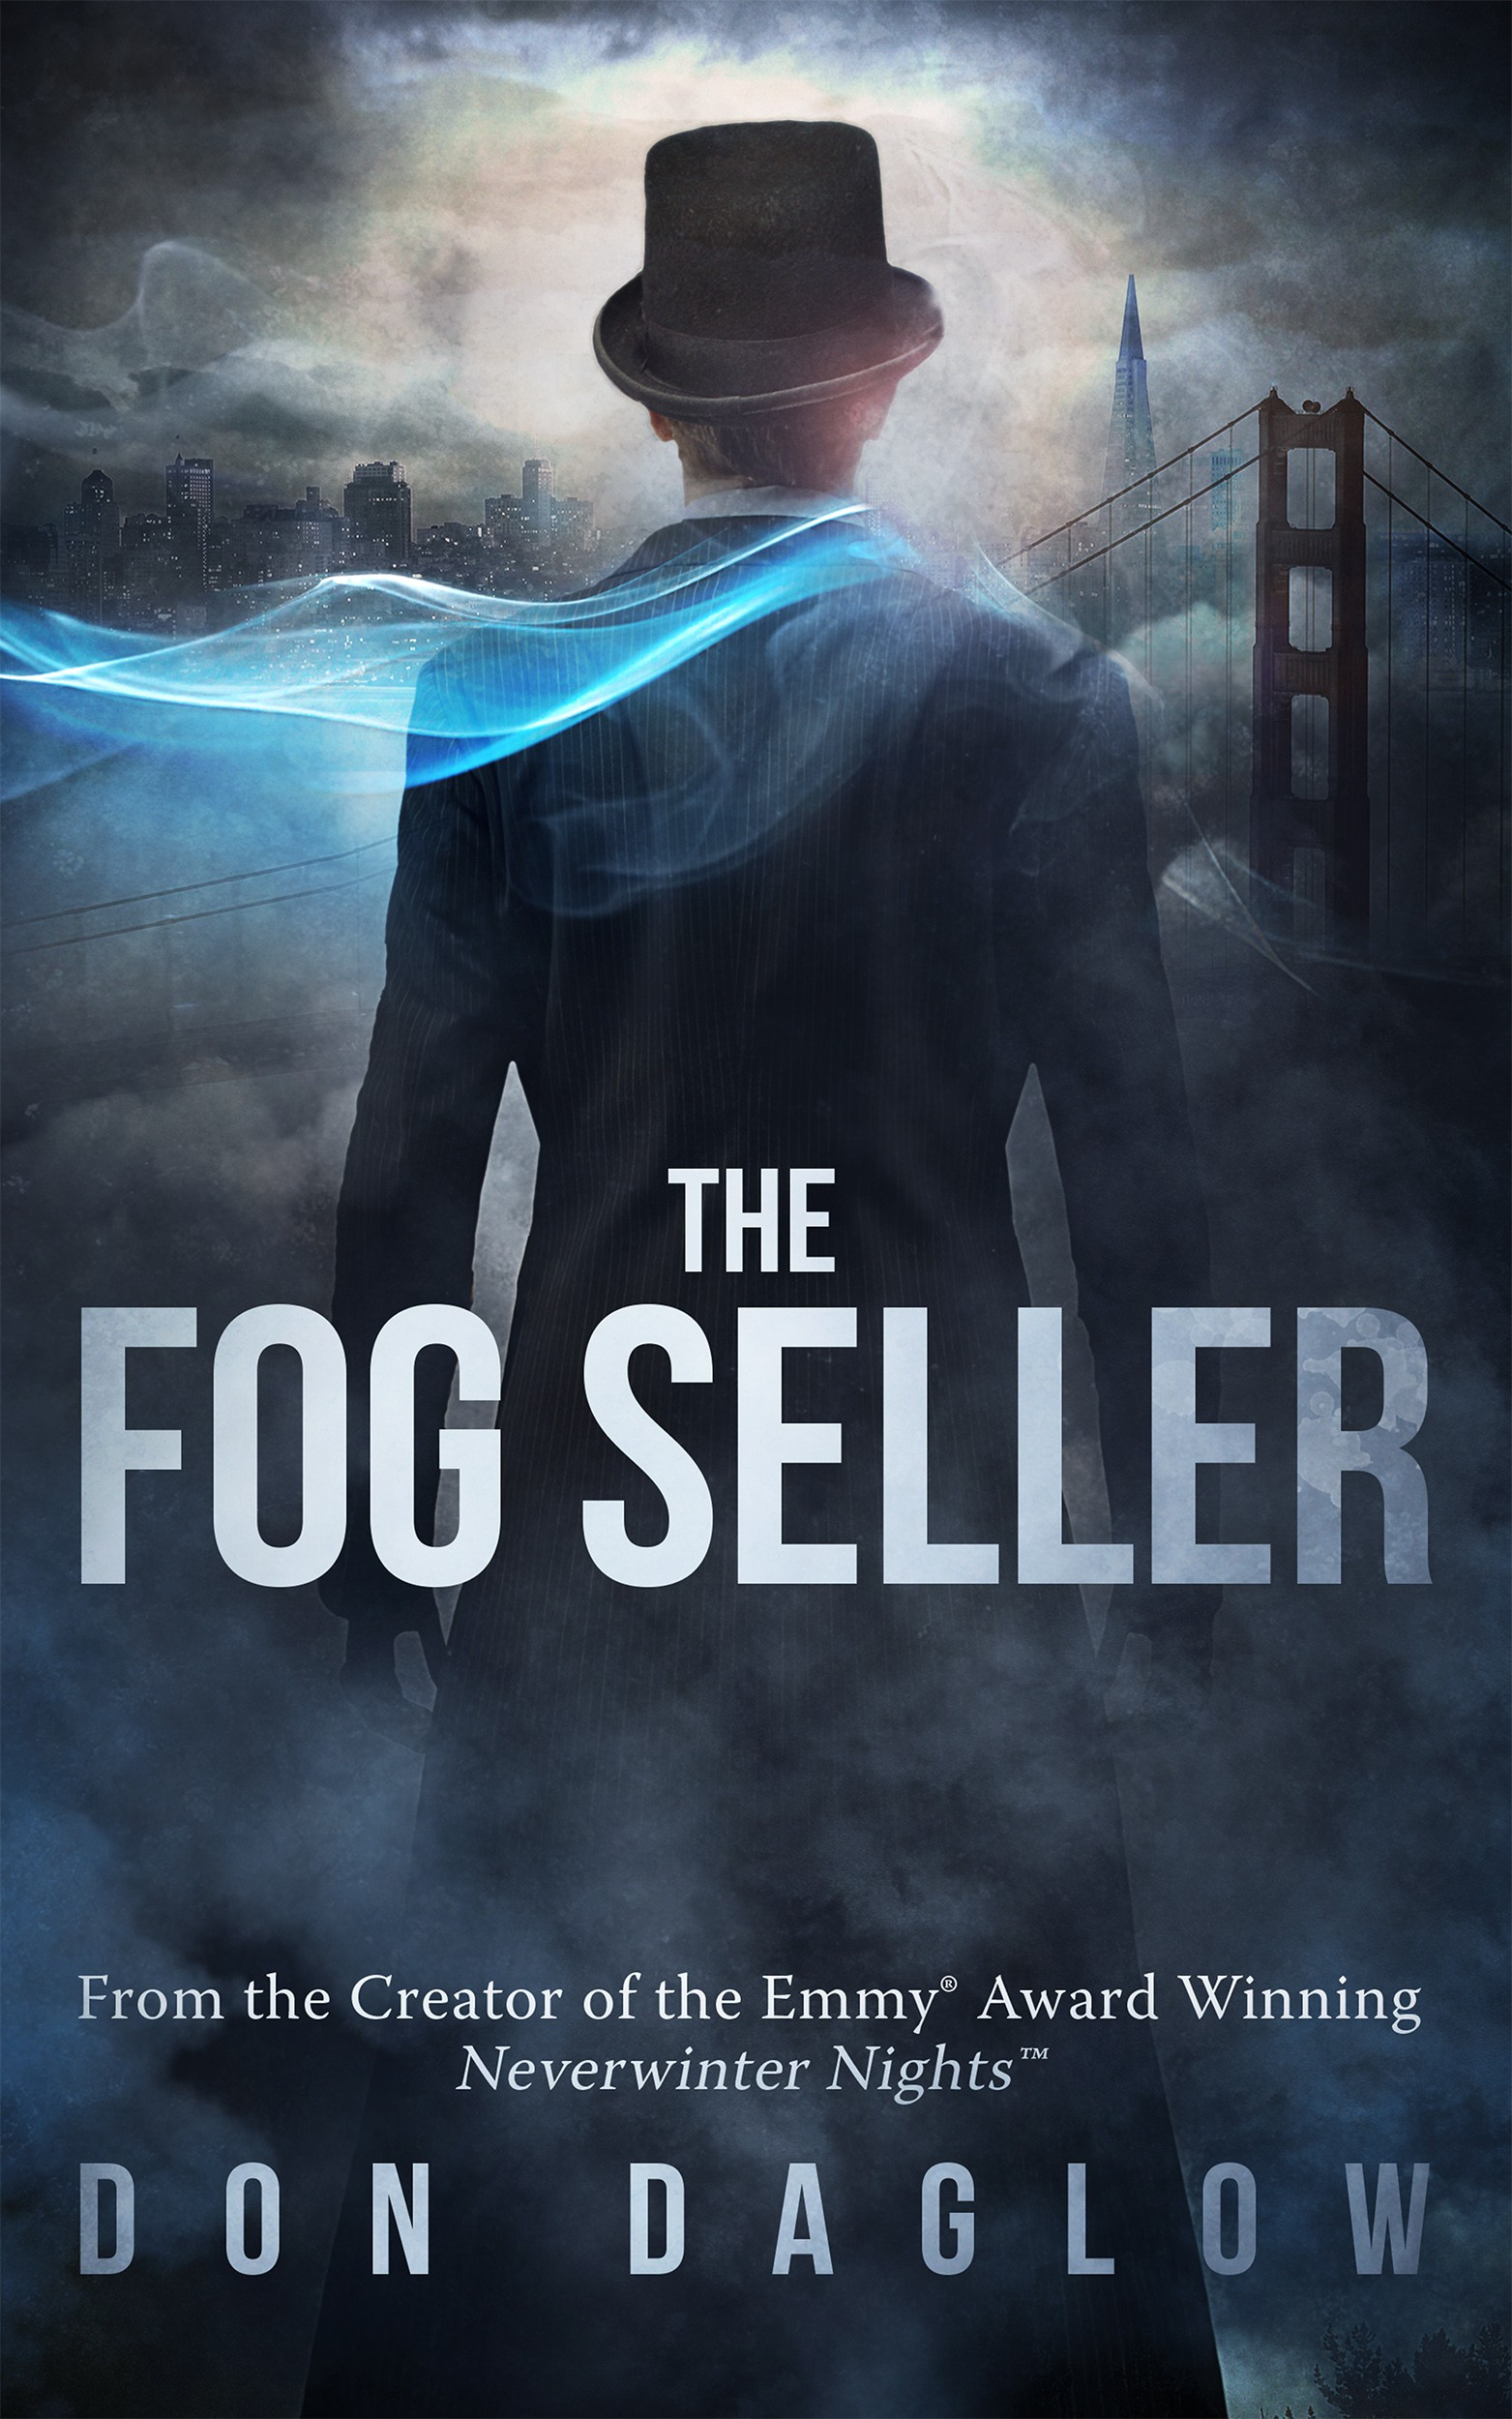 The Fog Seller novel book cover